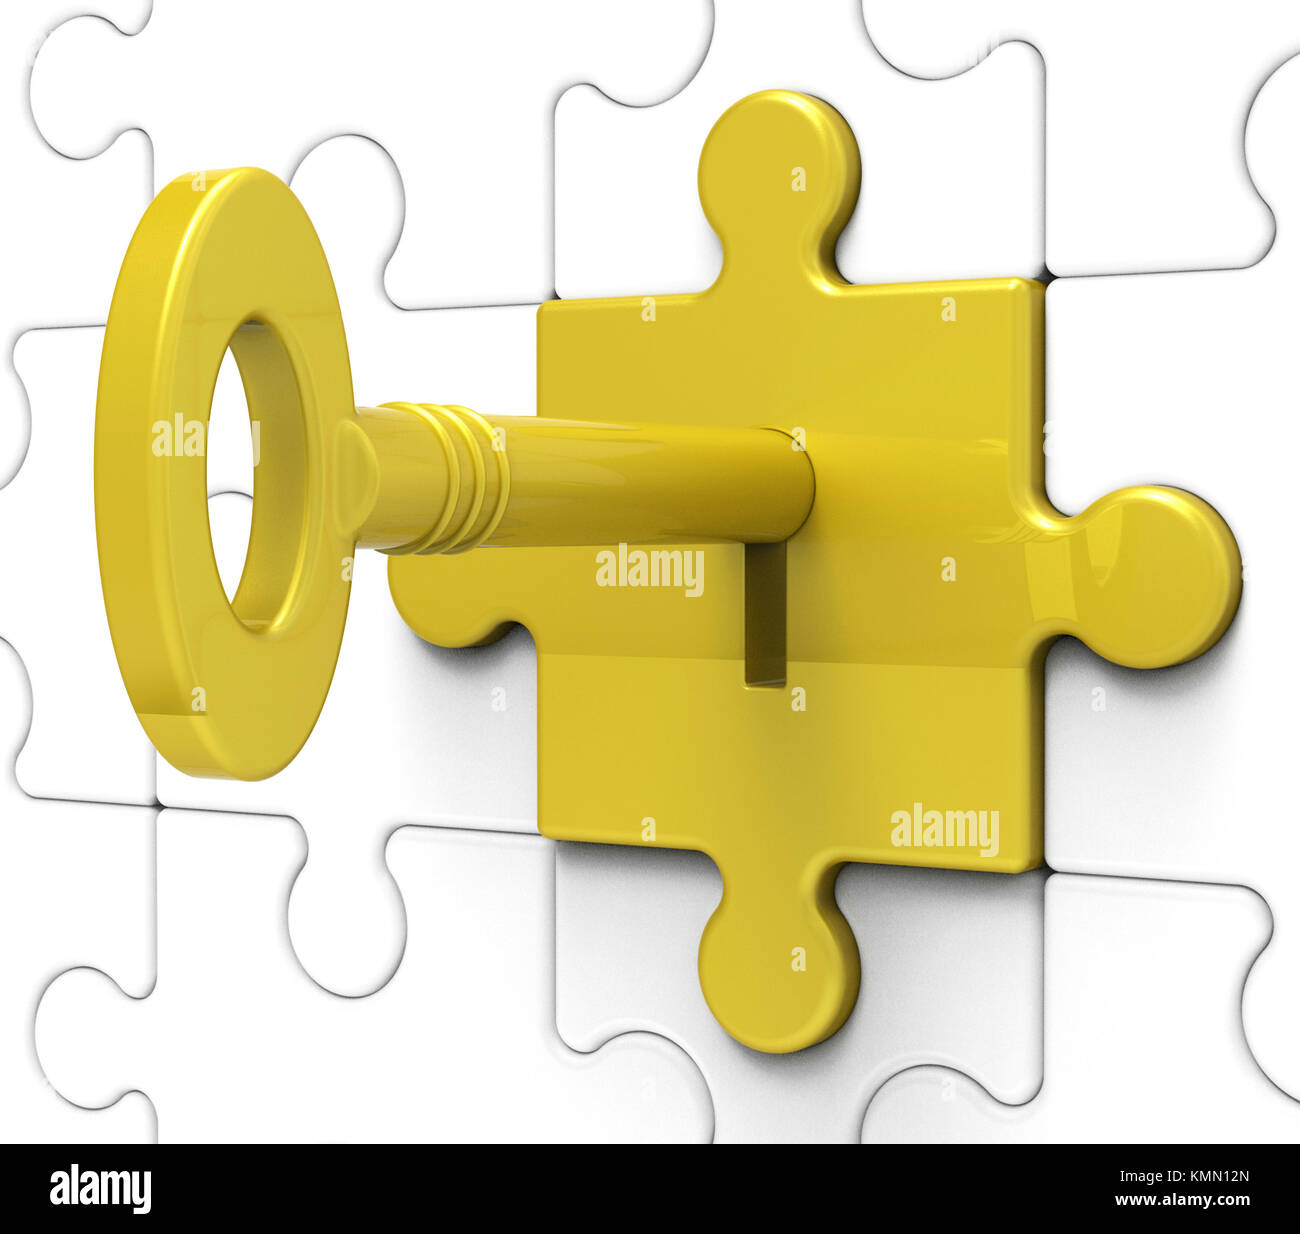 Key In Lock Shows Hidden And Locked Secrets - Stock Image